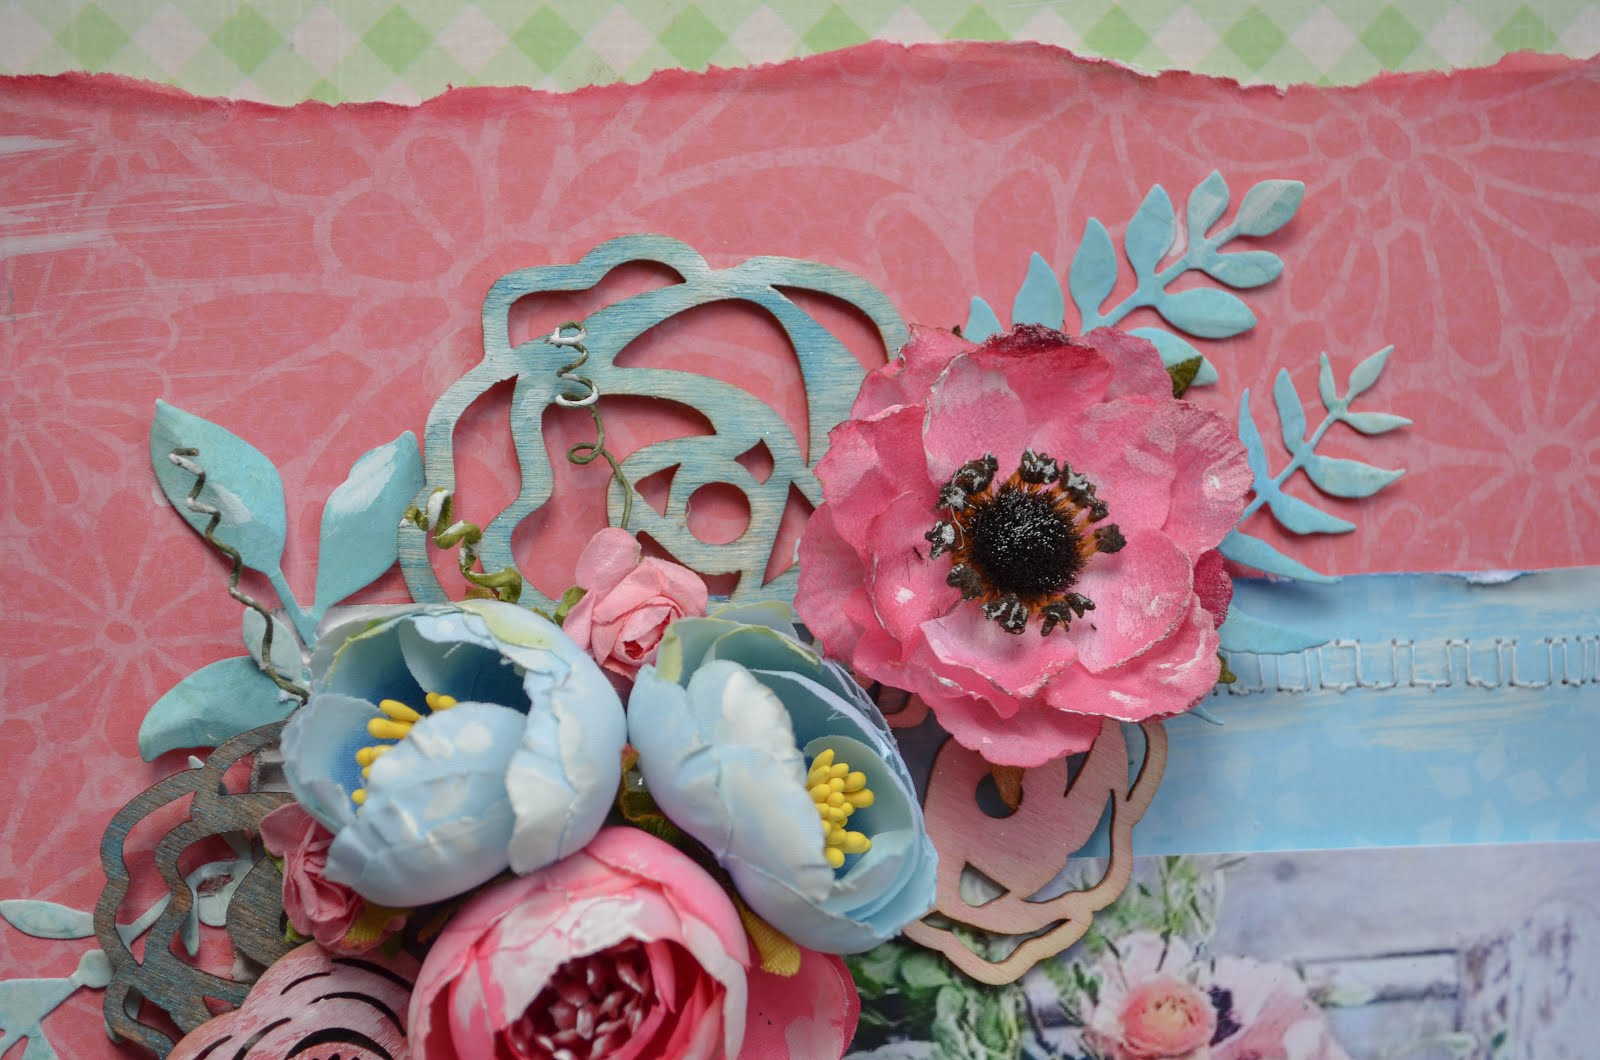 Scrapbooking layout in pink, green, and blue with lots of flowers, wood embellishments, and corrugated cardboard.